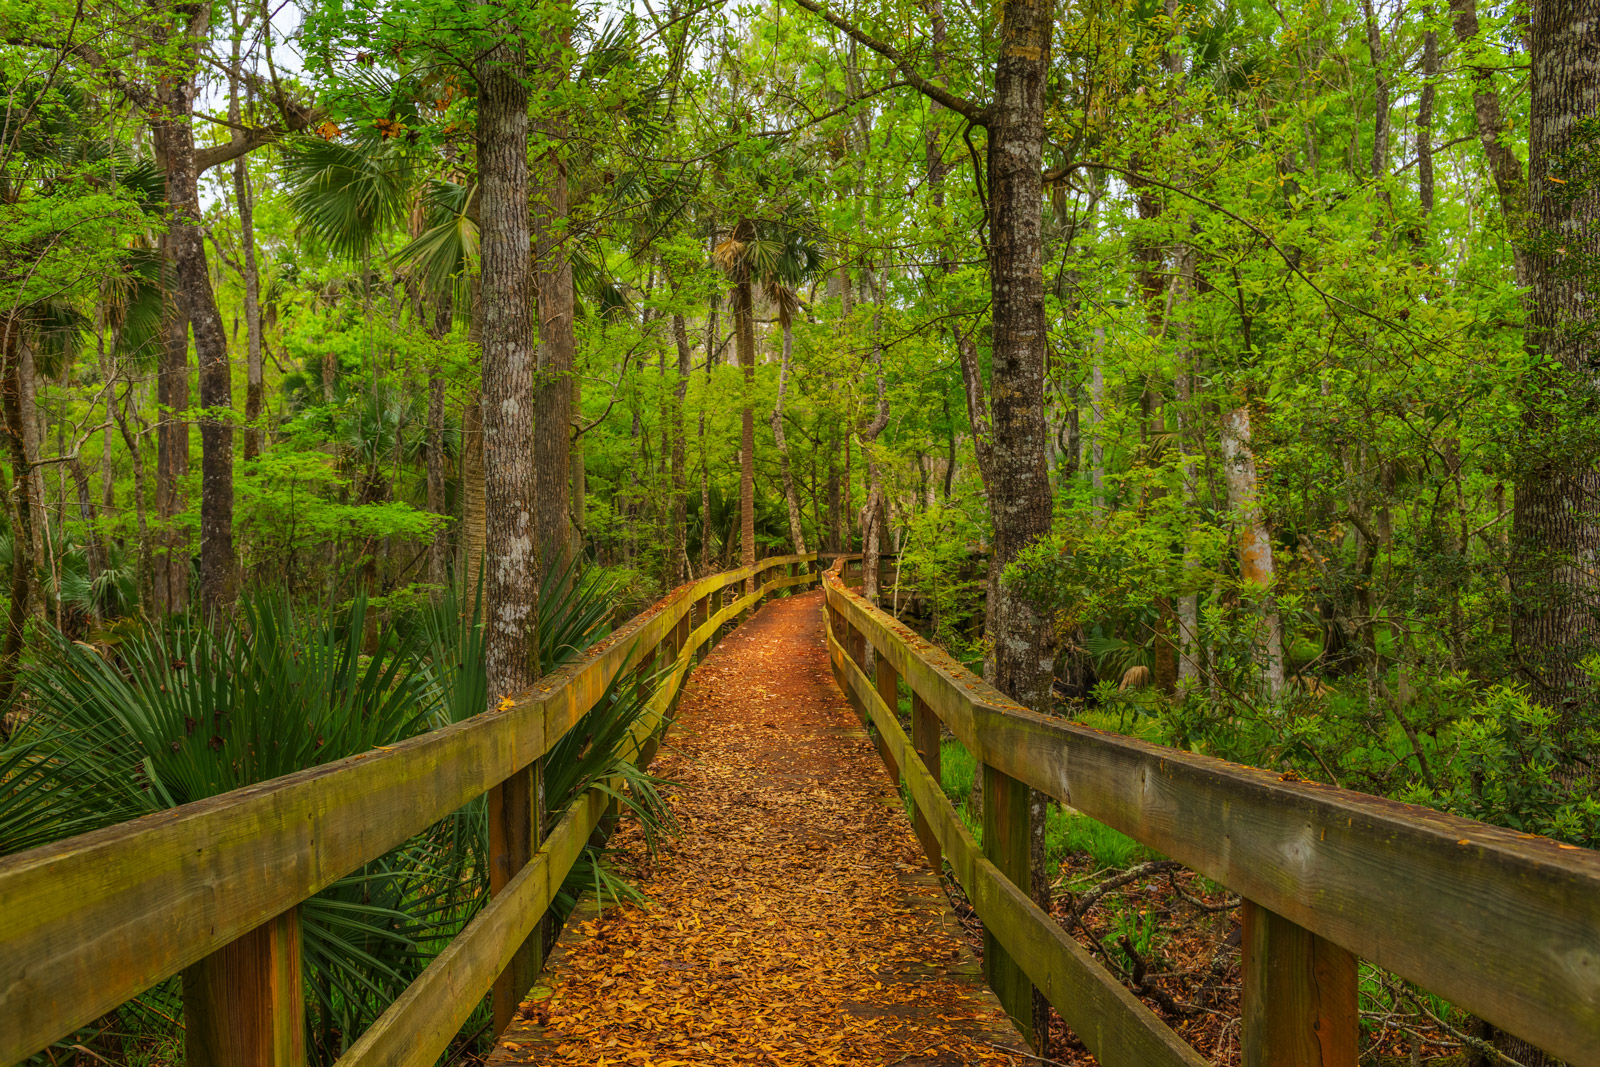 Florida, Woods, Hammock, Boardwalk, Leaves, limited edition, photograph, fine art, landscape, forest, tree, photo